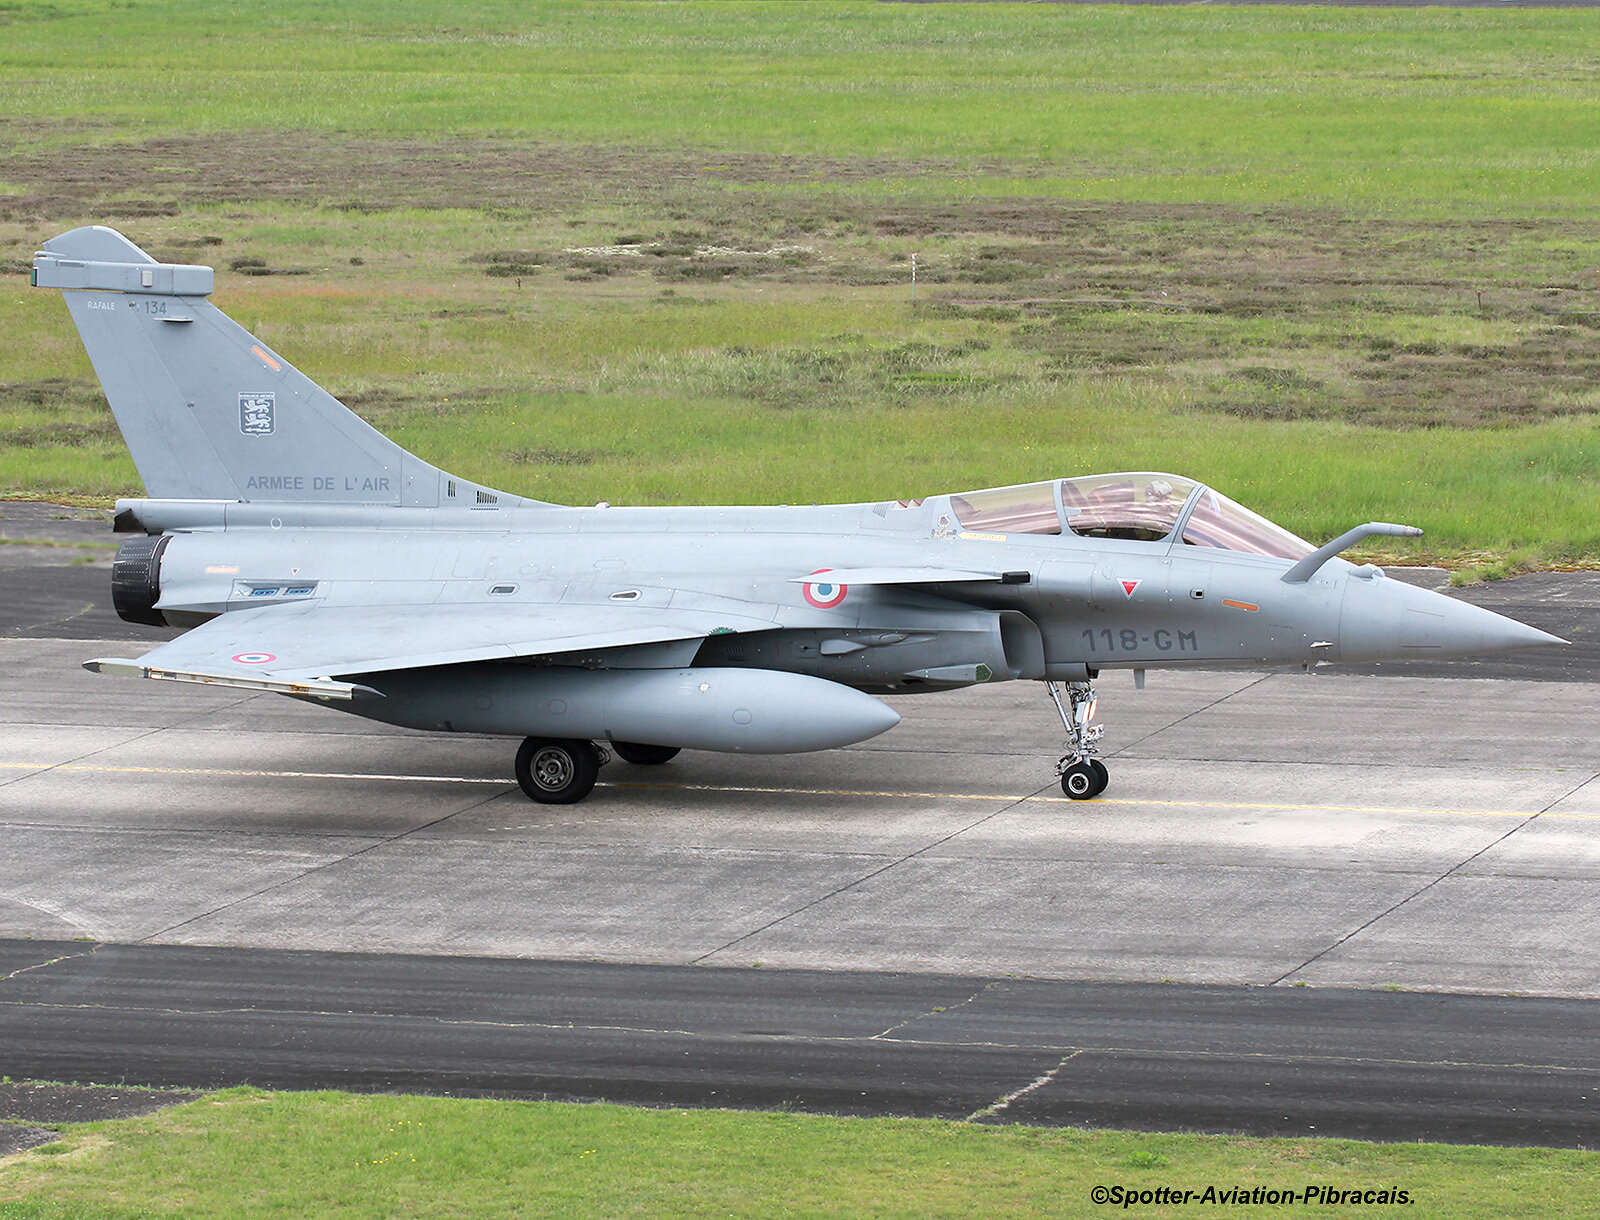 French-Air Force E/C 2/30